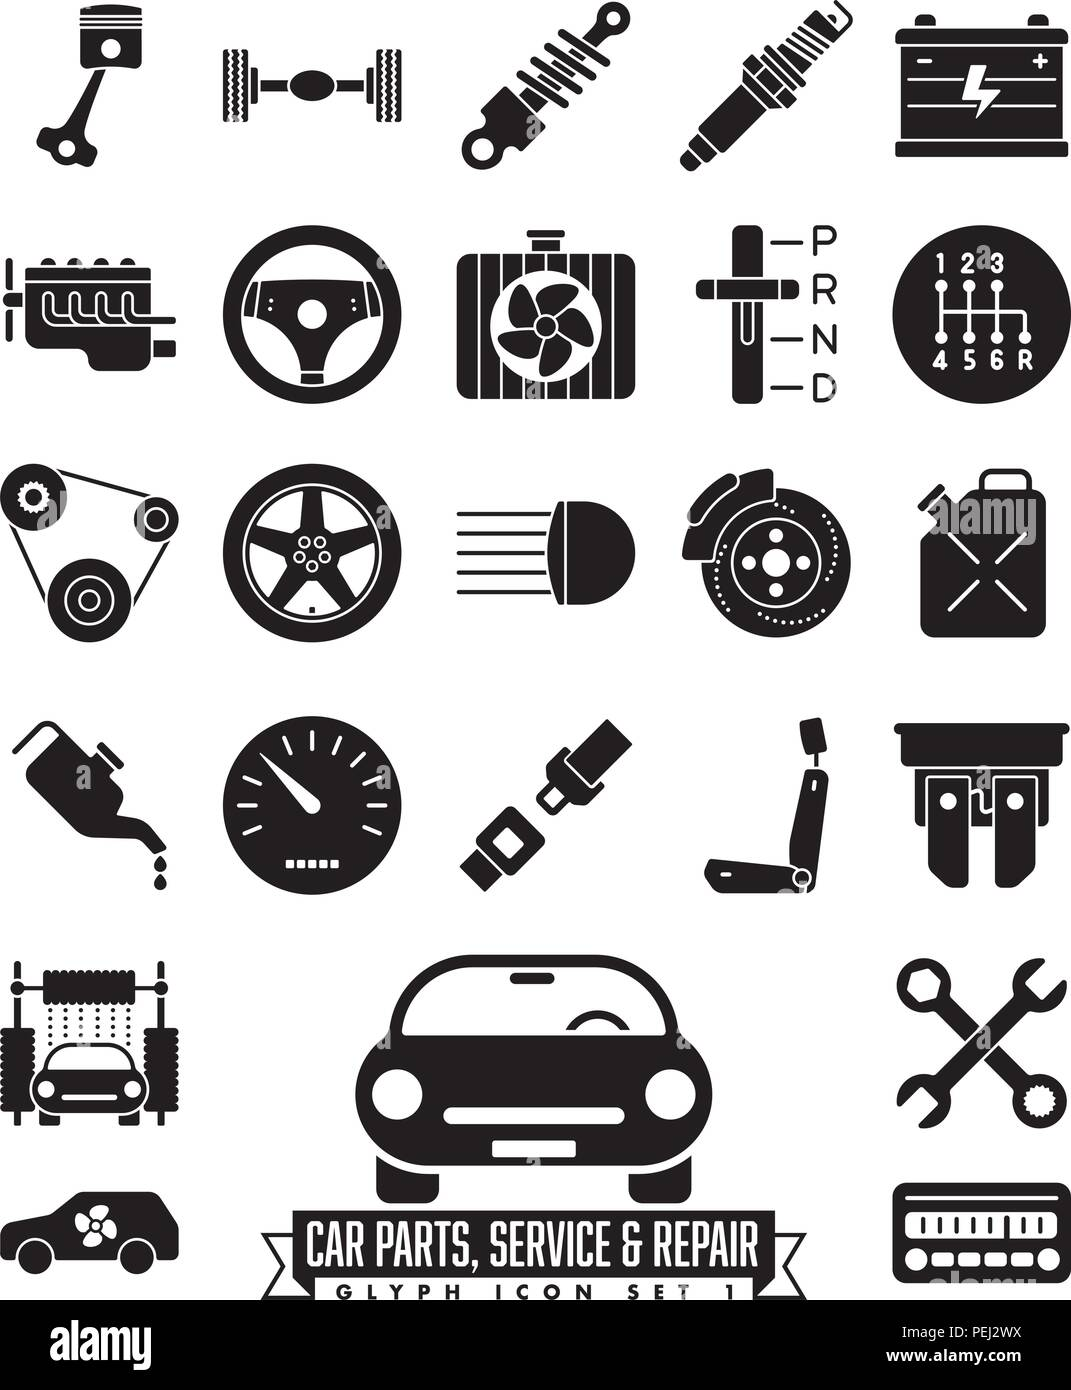 Collection Of Isolated Car Parts Service And Repair Glyph Icons